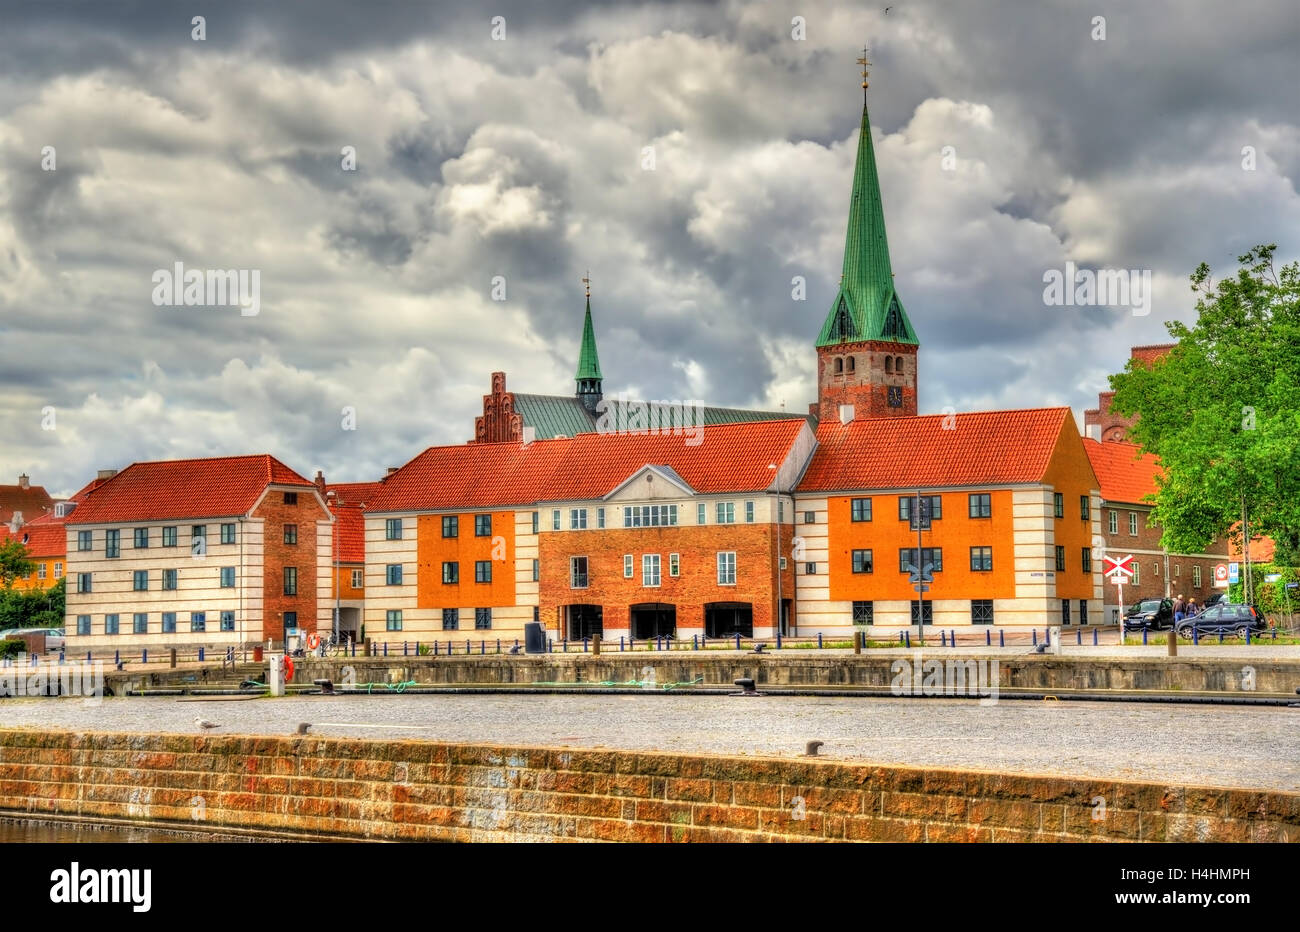 View of Saint Olaf Church in Helsingor, Denmark - Stock Image